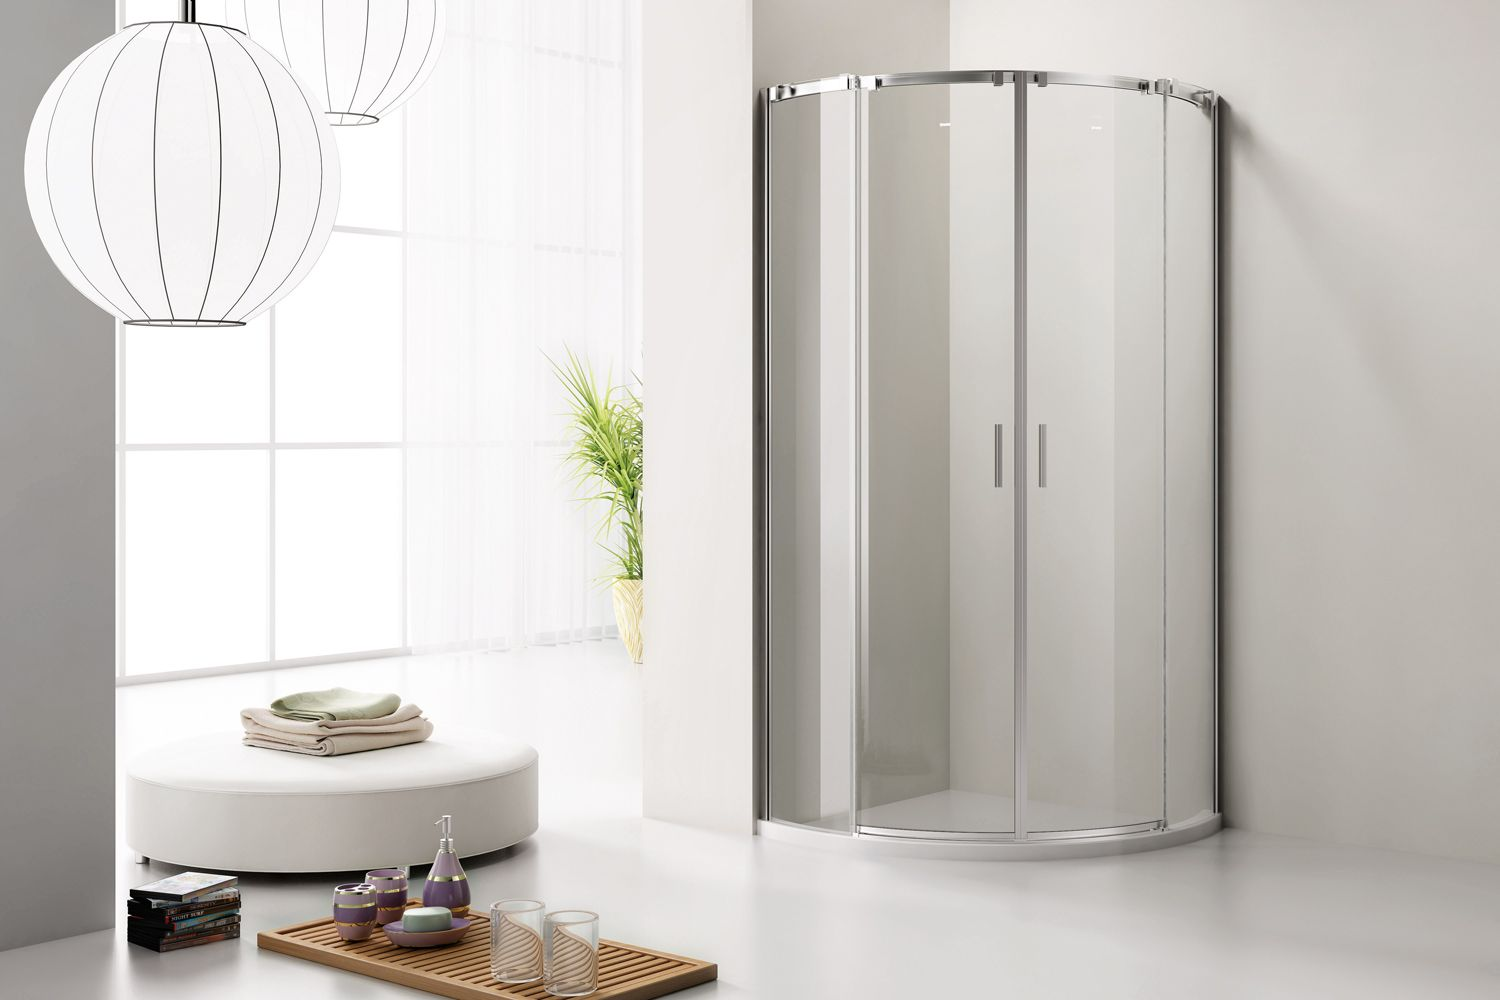 The Dabbl Company Is The Resource For Shower Doors Enclosures Sliding Pivot Hinged C Neo Angle Shower Doors Bathroom Shower Doors Corner Shower Enclosures